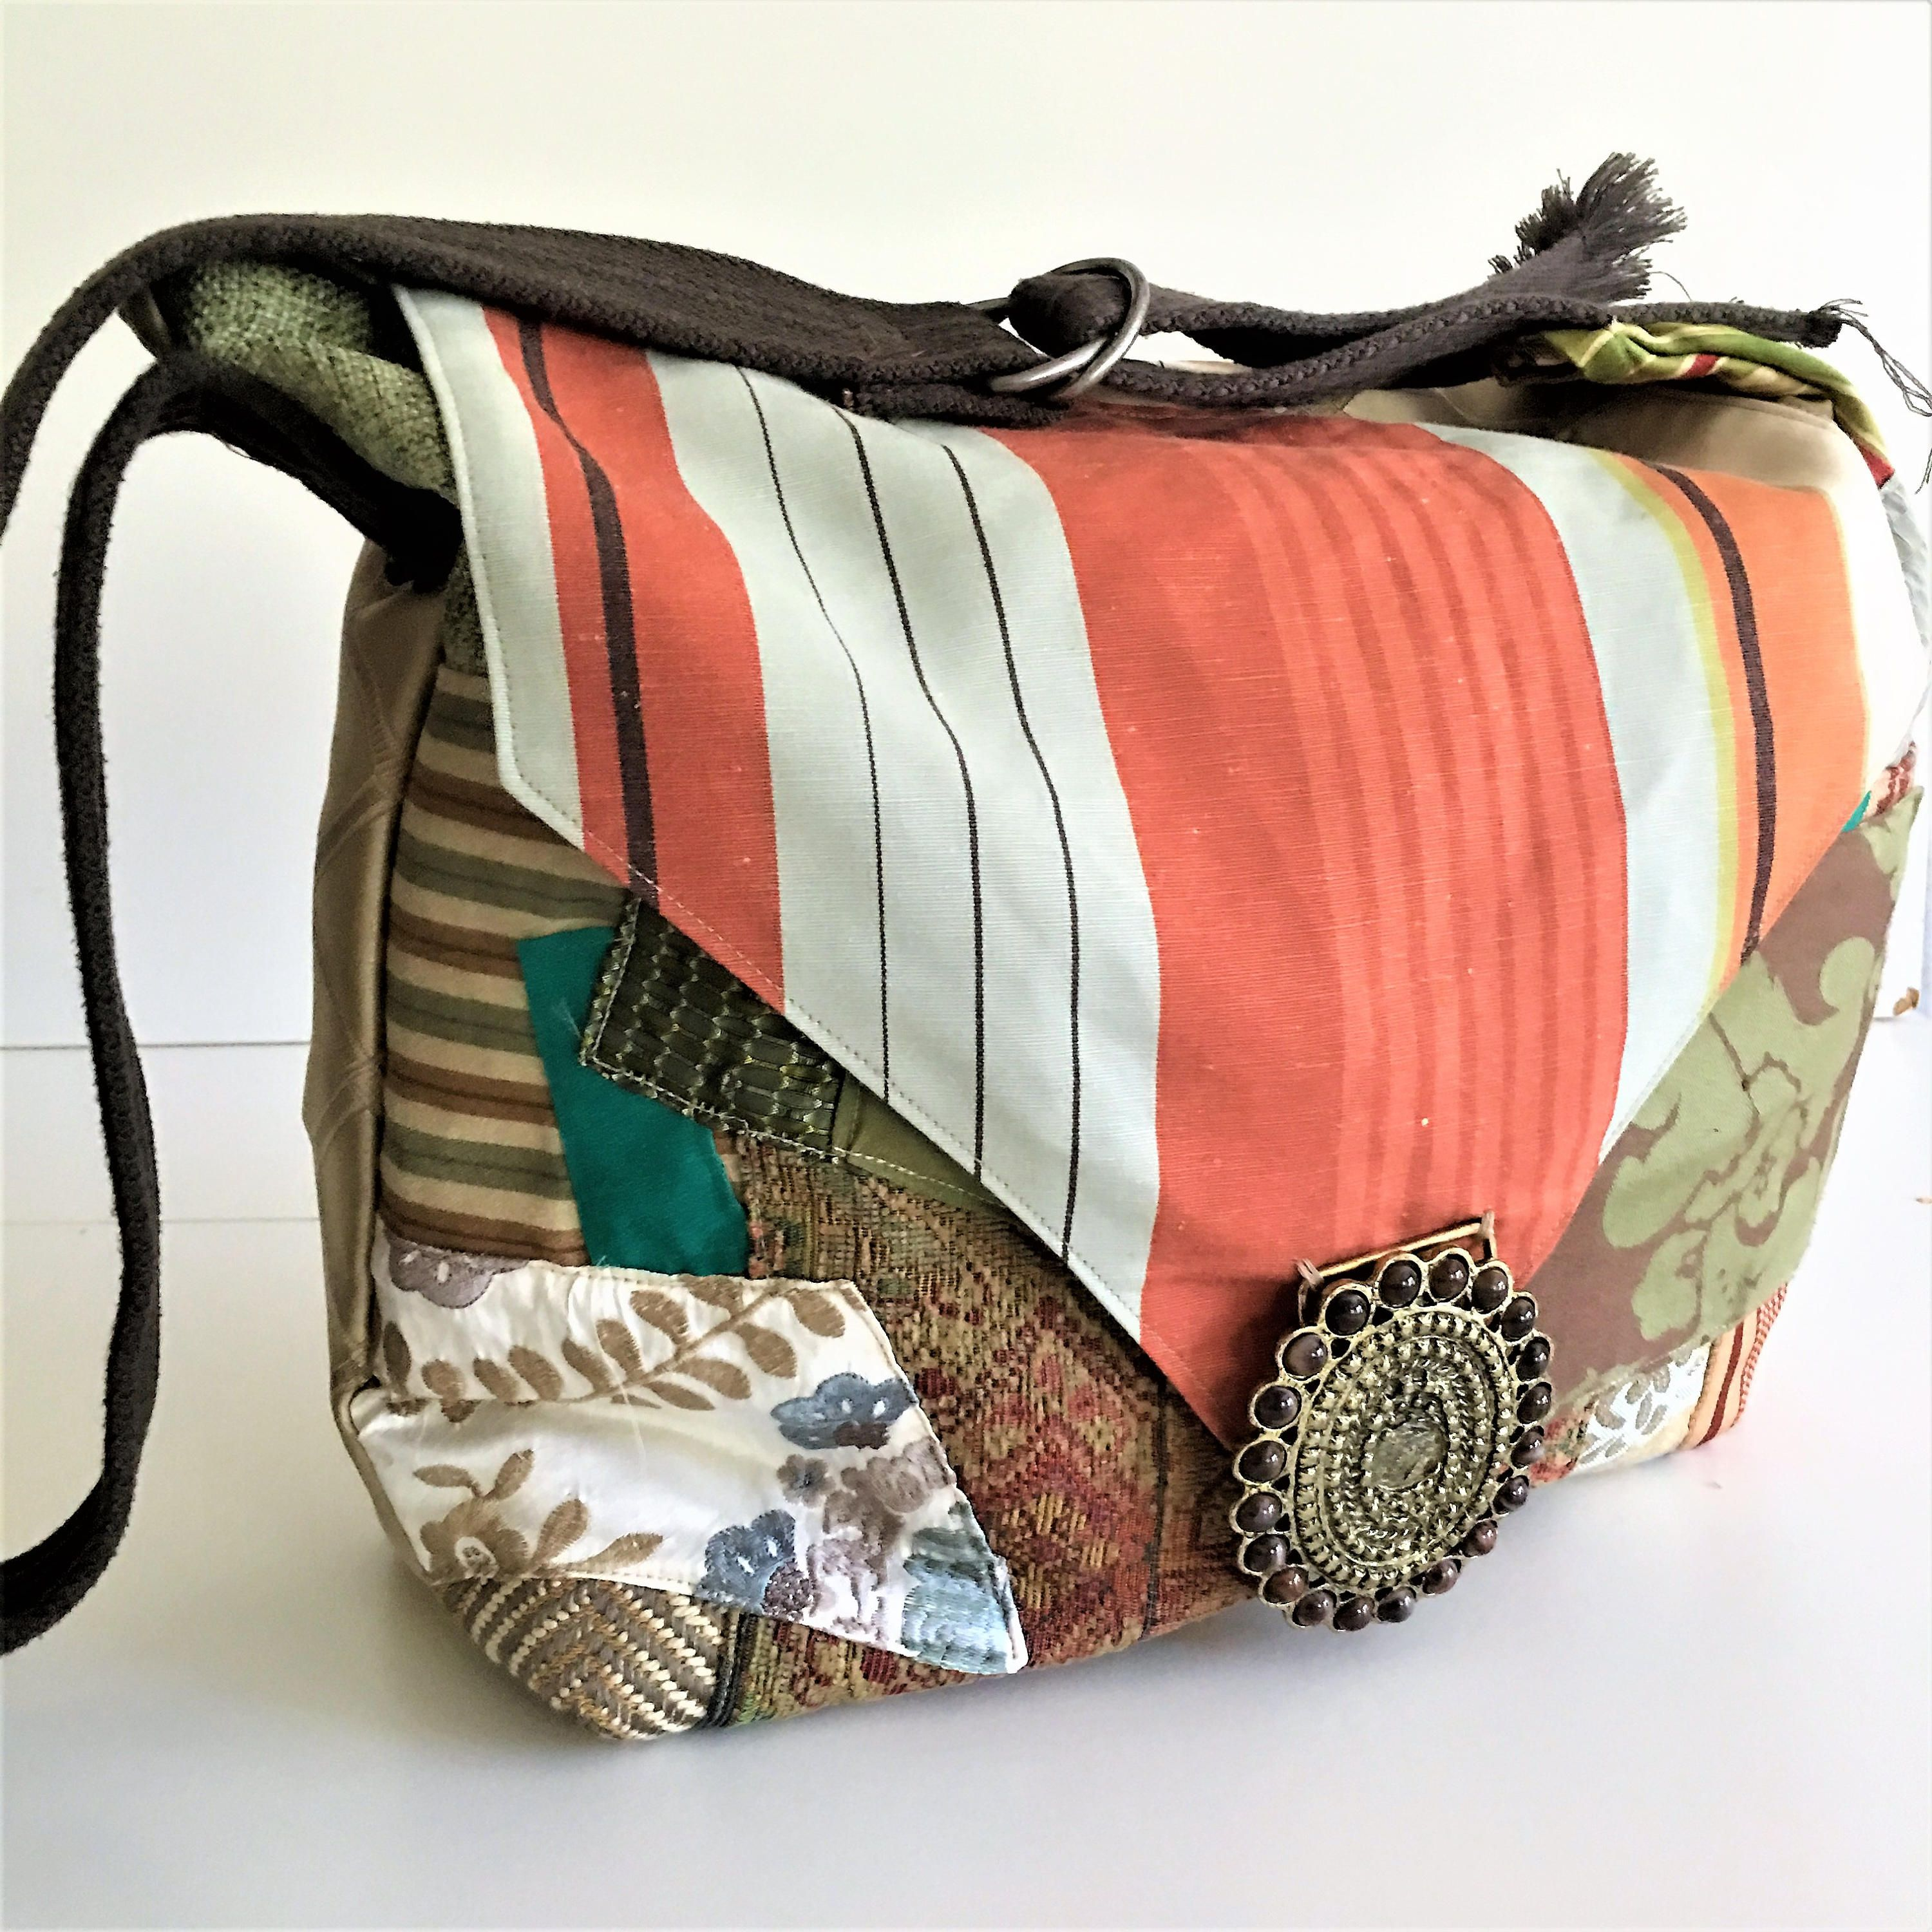 Boho Handbags Crossbody Bags Fabric Rusts And Browns Handcrafted